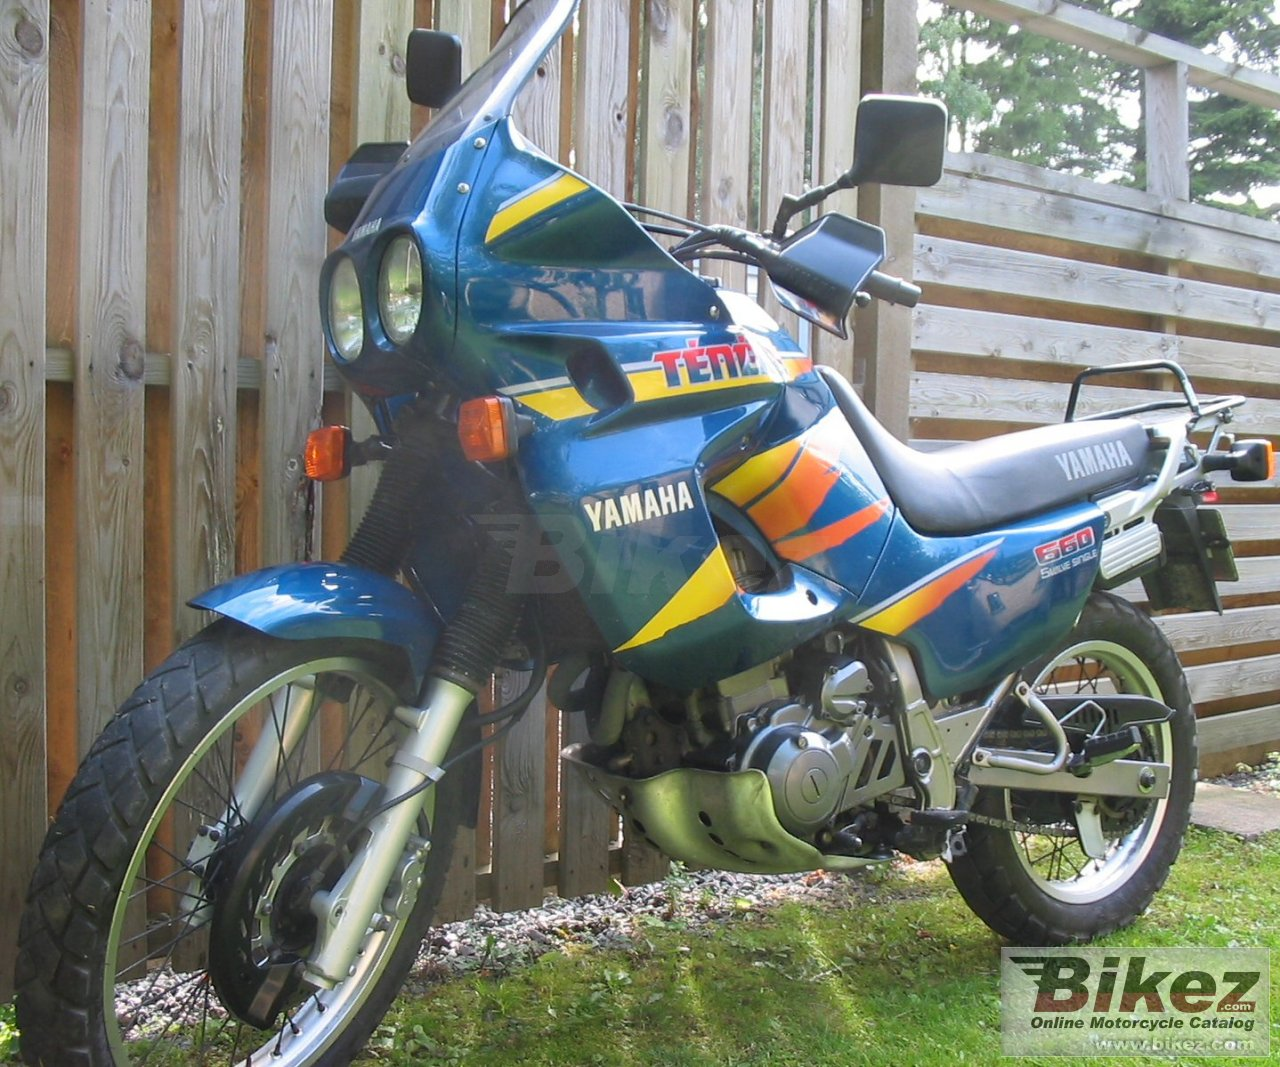 Big Pele Lidby xtz 660 tenere picture and wallpaper from Bikez.com